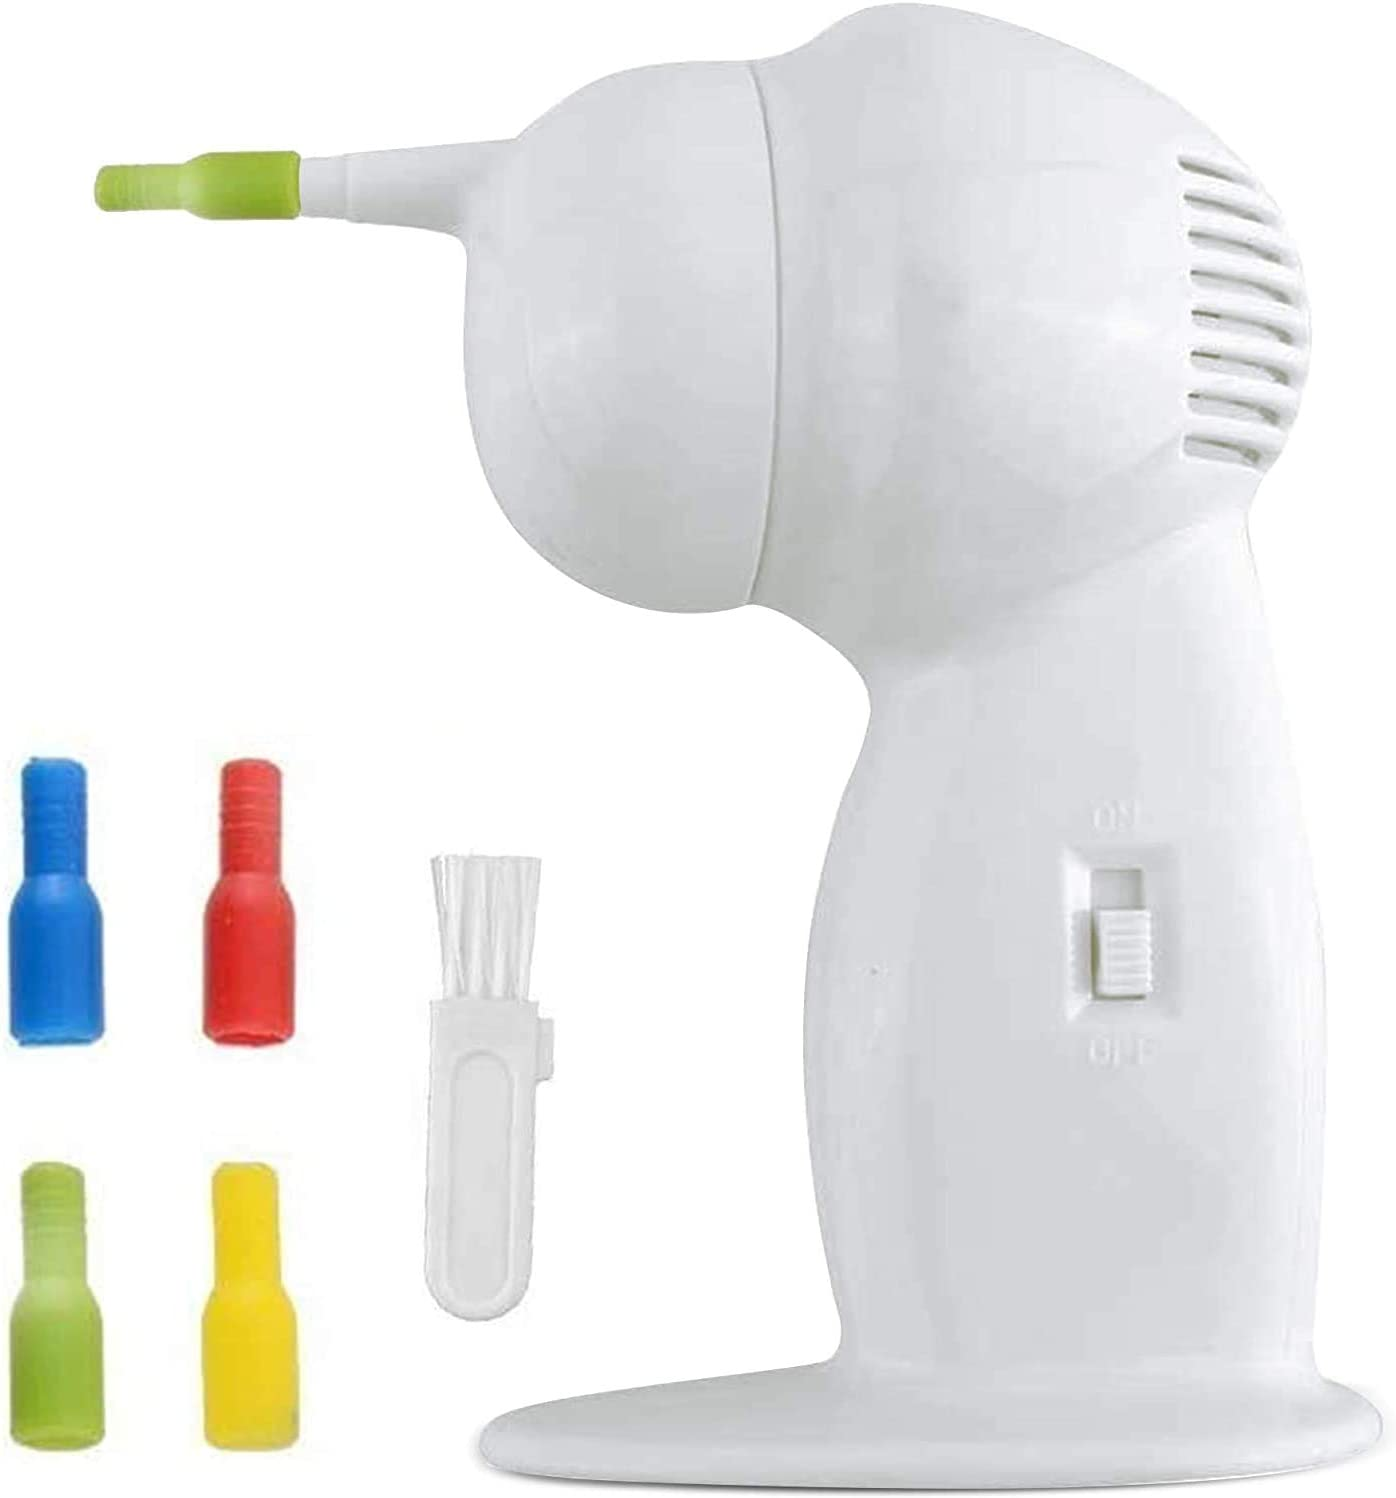 Ear Wax Removal, Ear Cleaner, Electric Ear Wax Vacuum, Safe and Effective Ear wax Removal Tool for Ear Cleaning